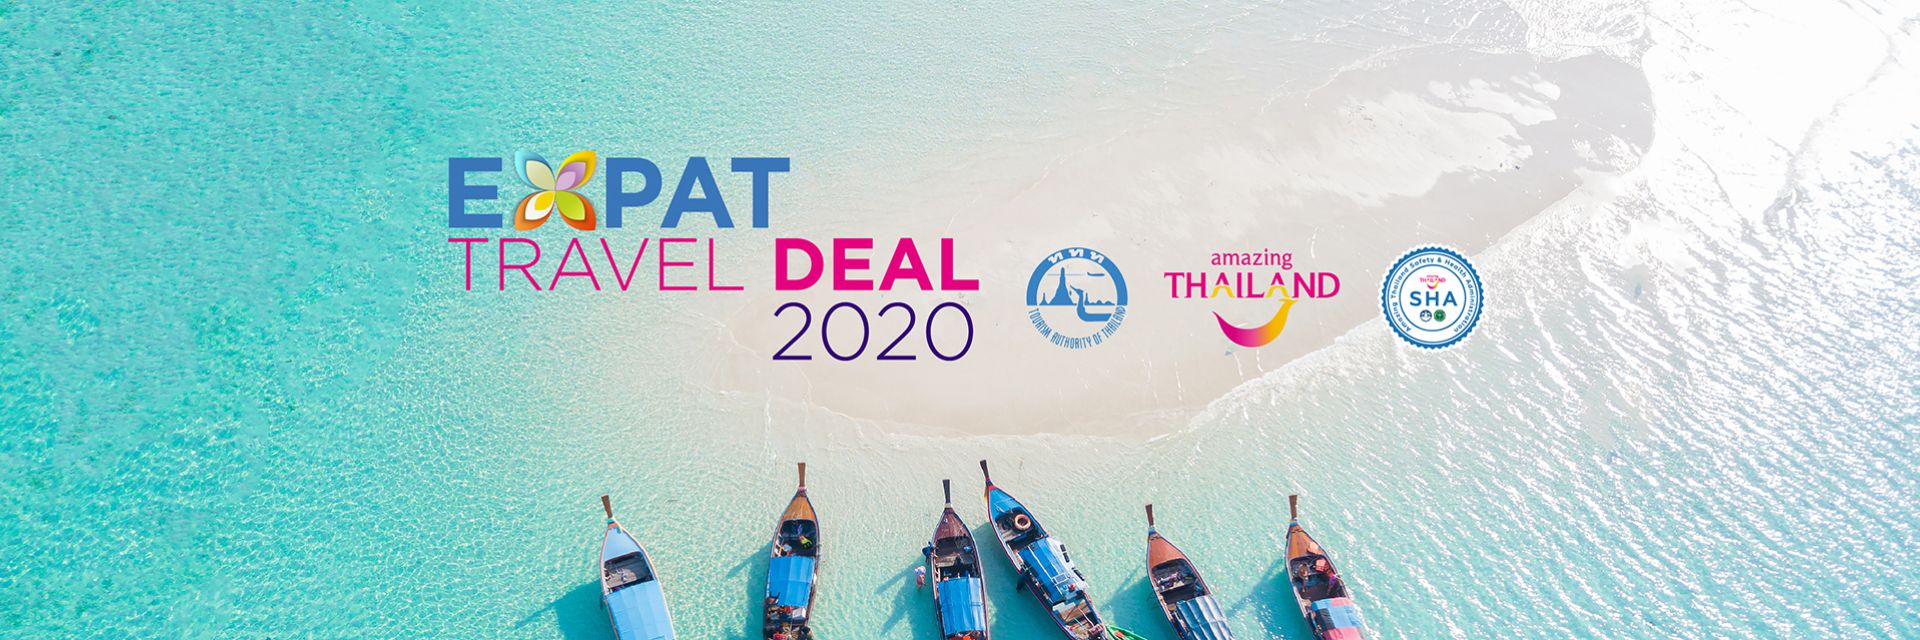 Tat Highlights Travel Promotions For Expats In Thailand